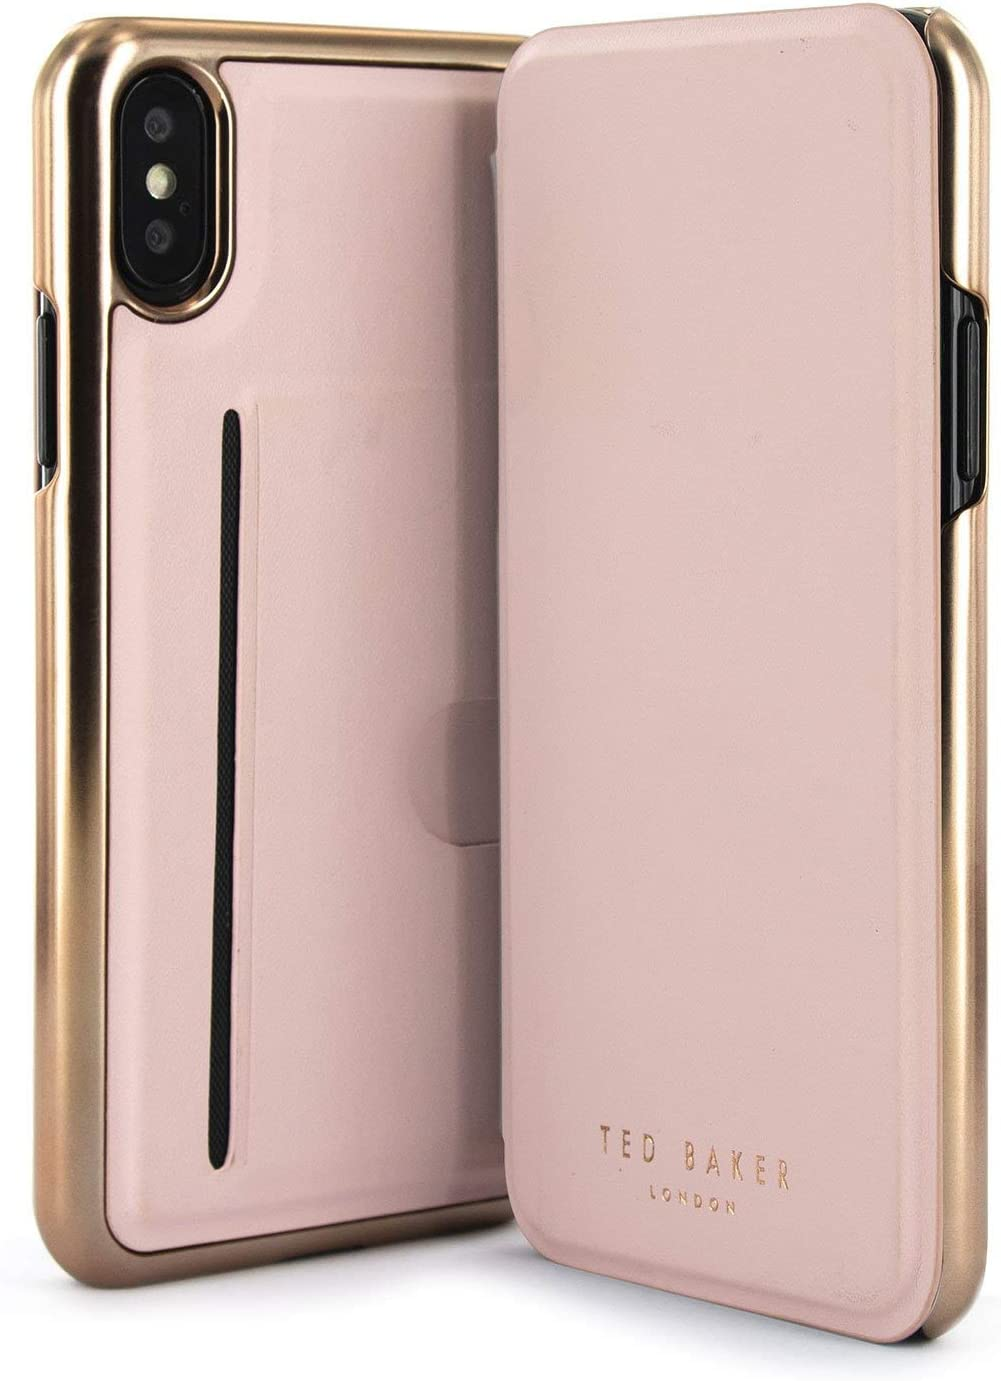 Ted Baker SHANNON Fashion Mirror Folio Case with outer Card Slot for iPhone X/XS, Contactless Card Slot Cover without Magnets for Women: Amazon.es: Electrónica